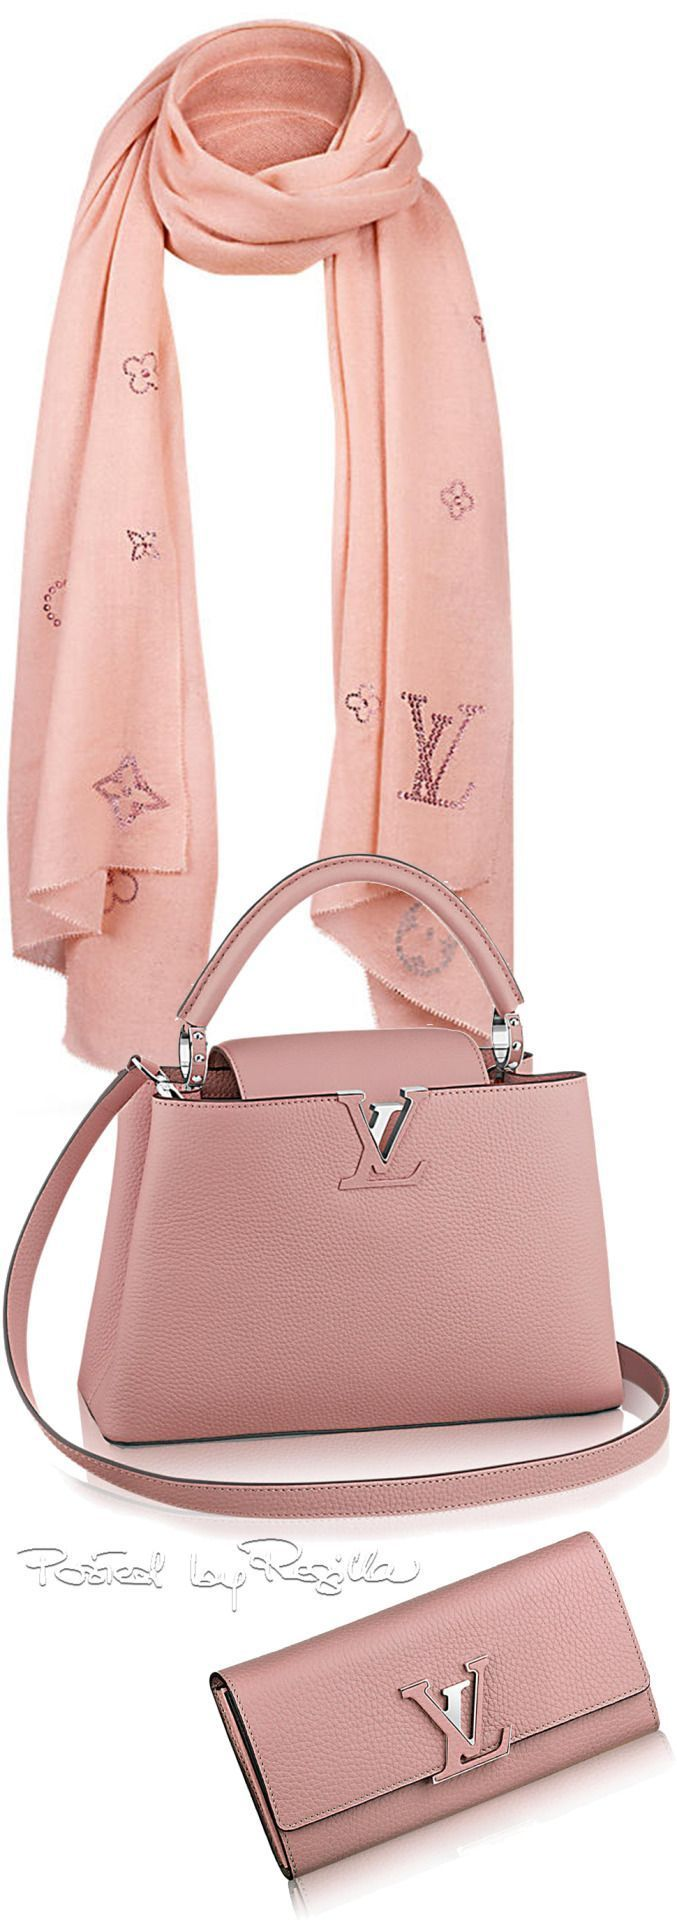 P & D FASHION CONSULTING recommends Styling Loius Vuitton r …